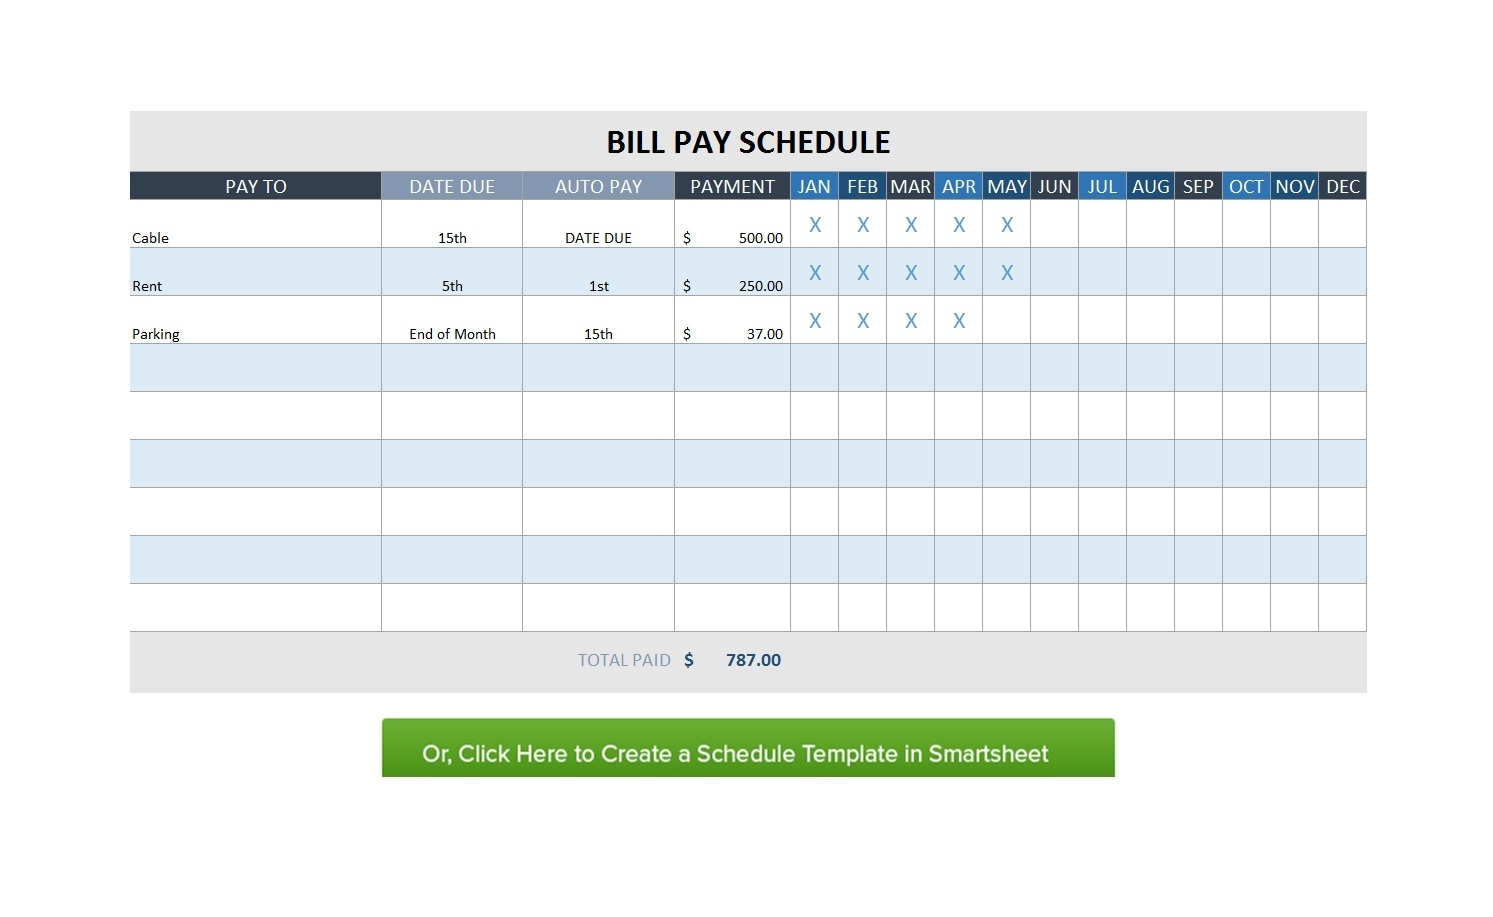 32 Free Bill Pay Checklists & Bill Calendars (Pdf, Word & Excel) throughout Calendar With Bill Due Dates